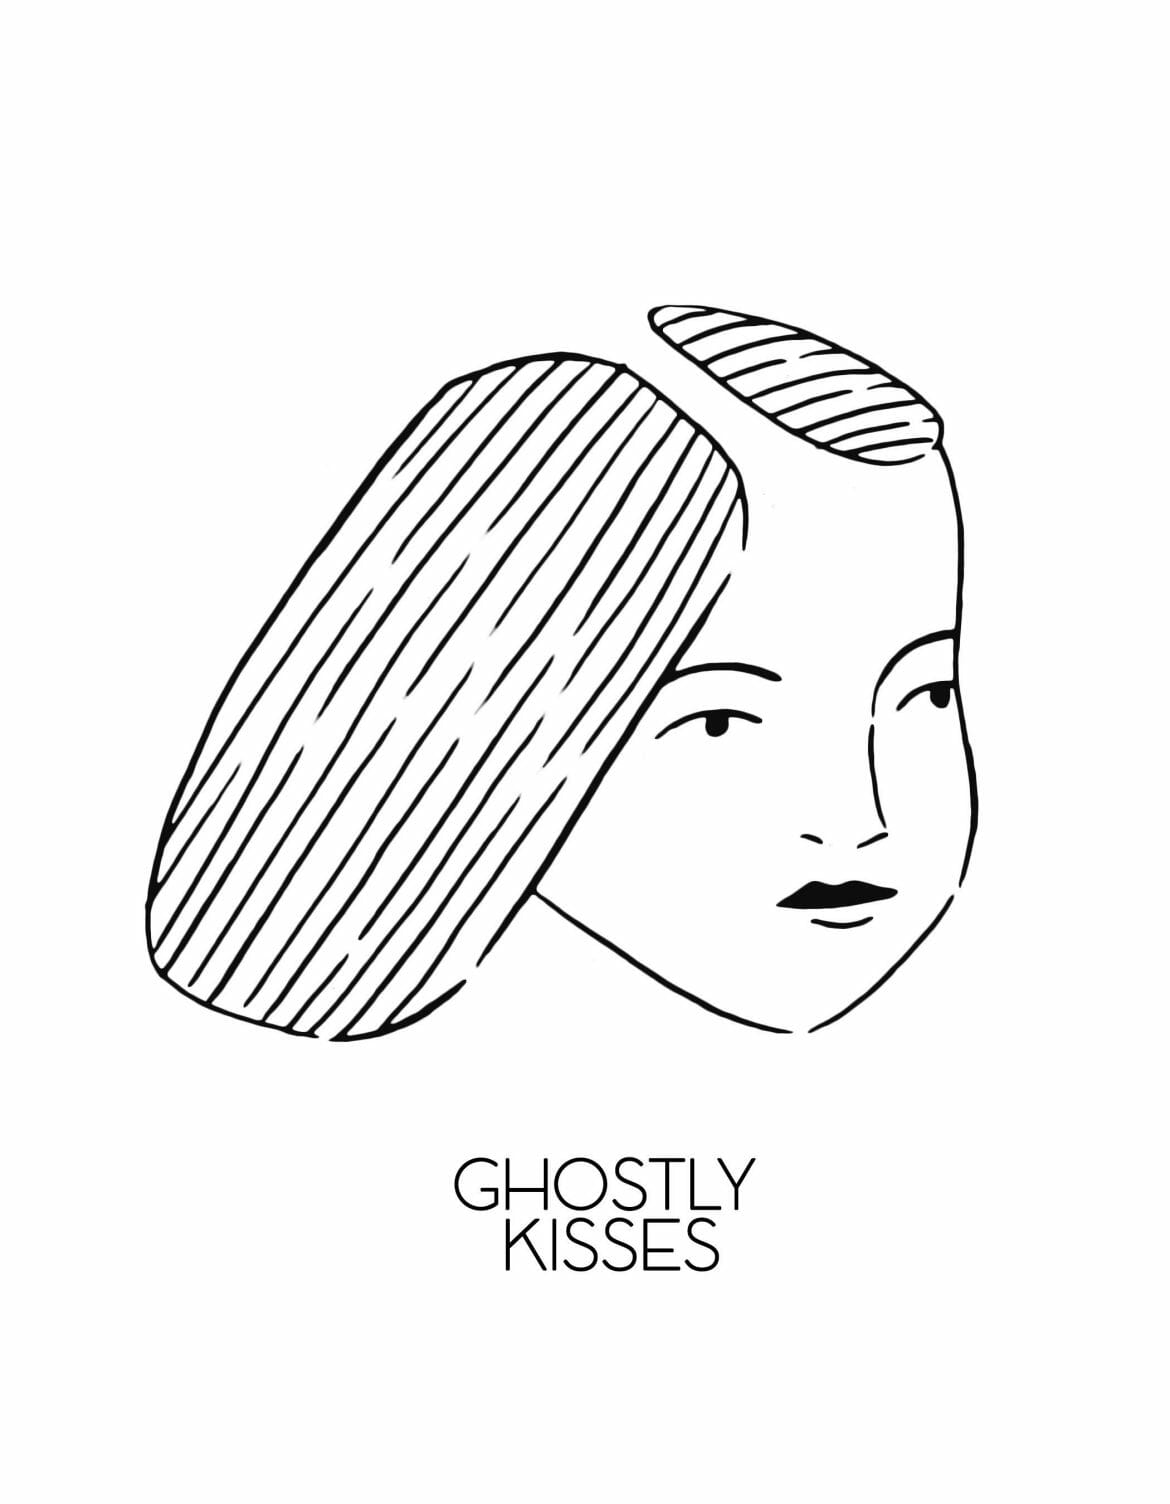 Ghostly Kisses